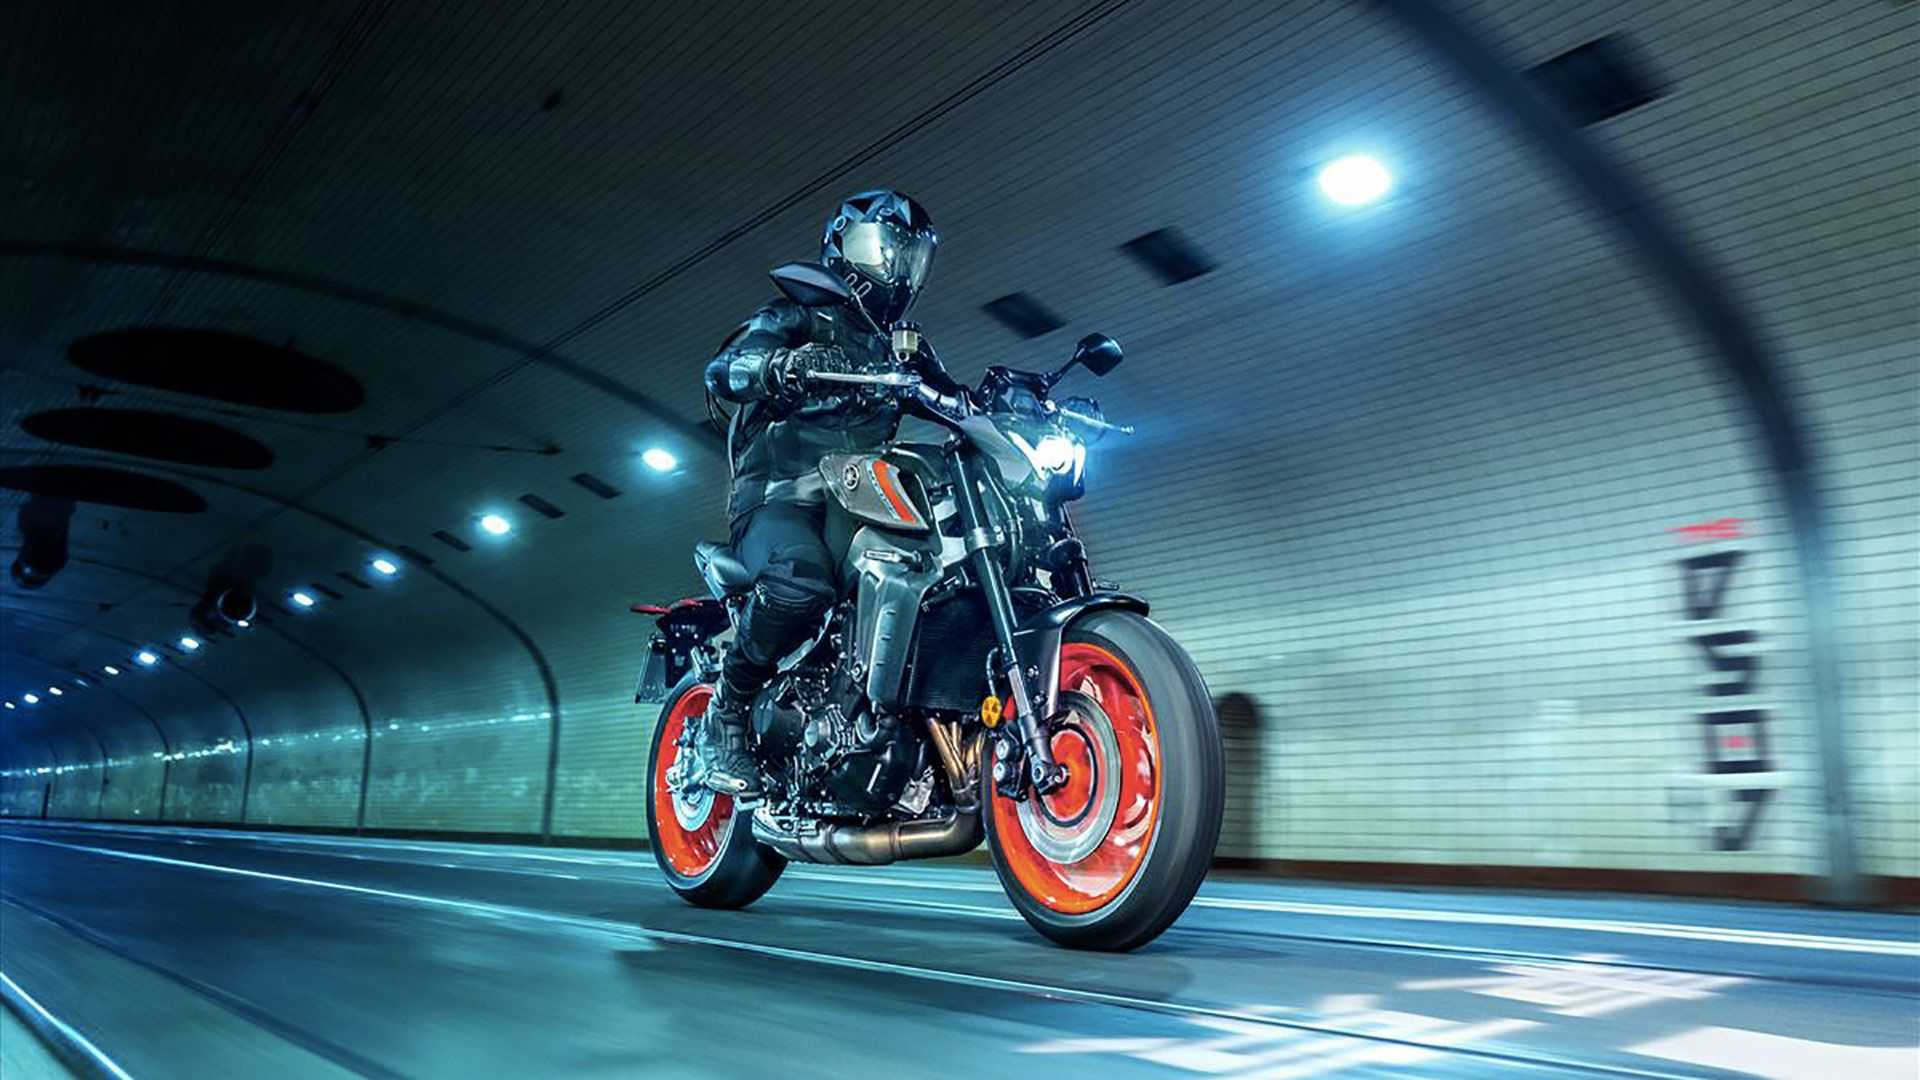 2021 Yamaha MT-09 Review – First Ride